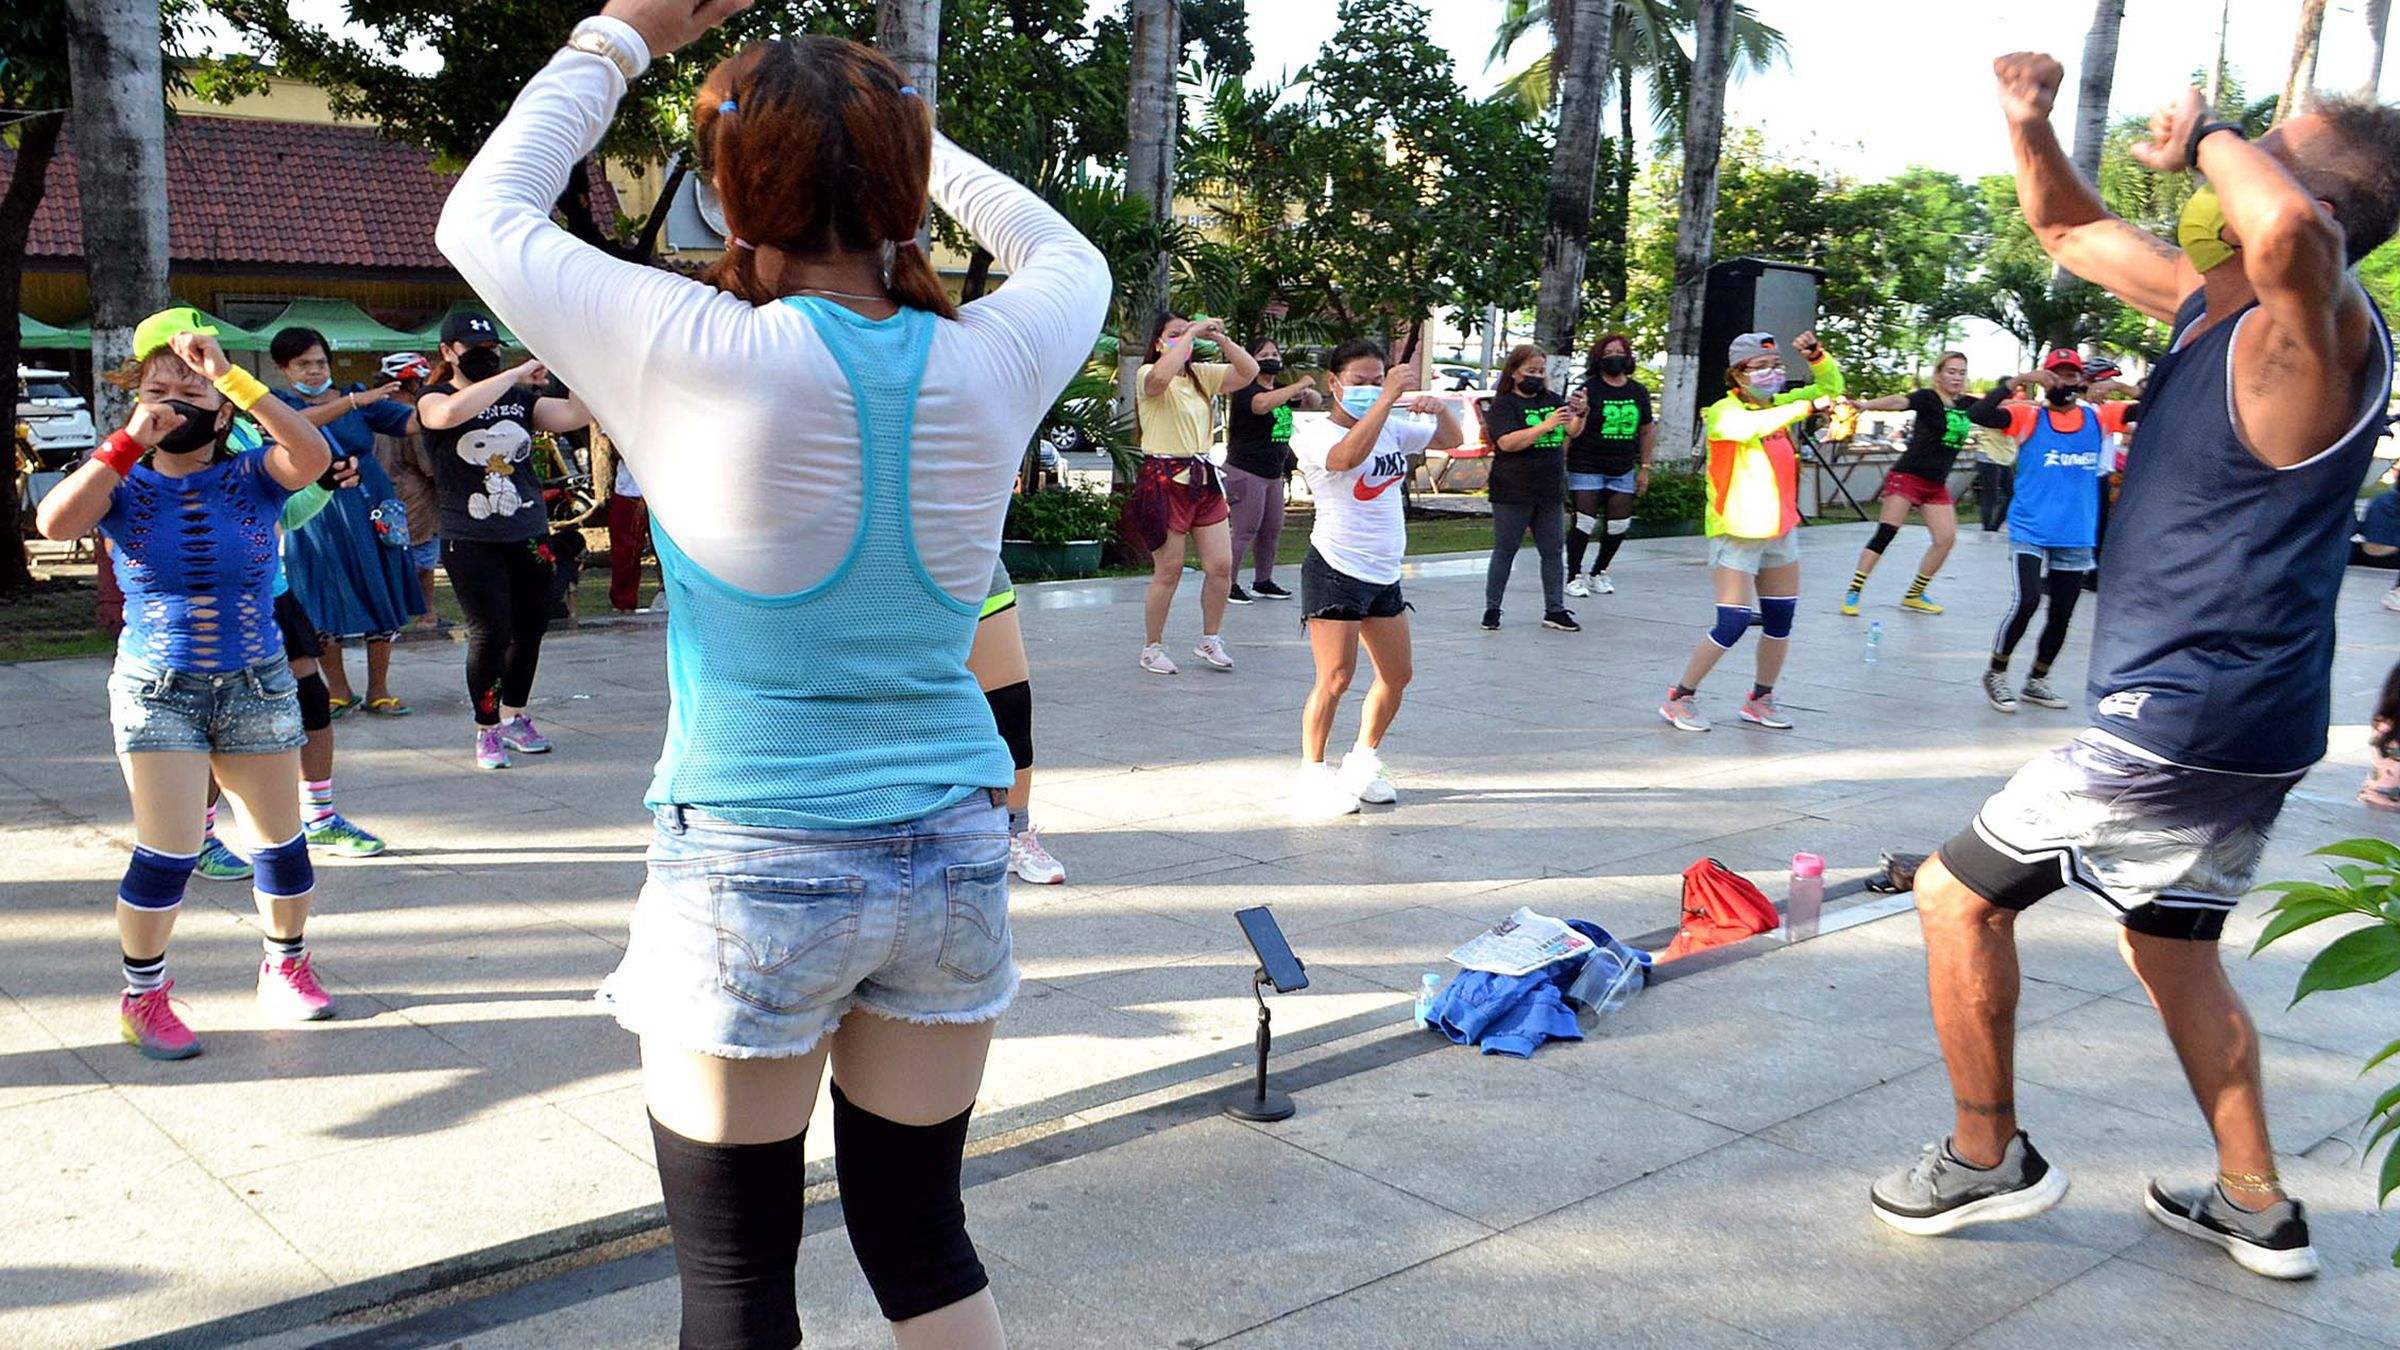 ZUMBA ENTHUSIASTS BACK ON THE STREETS photo Mike Taboy